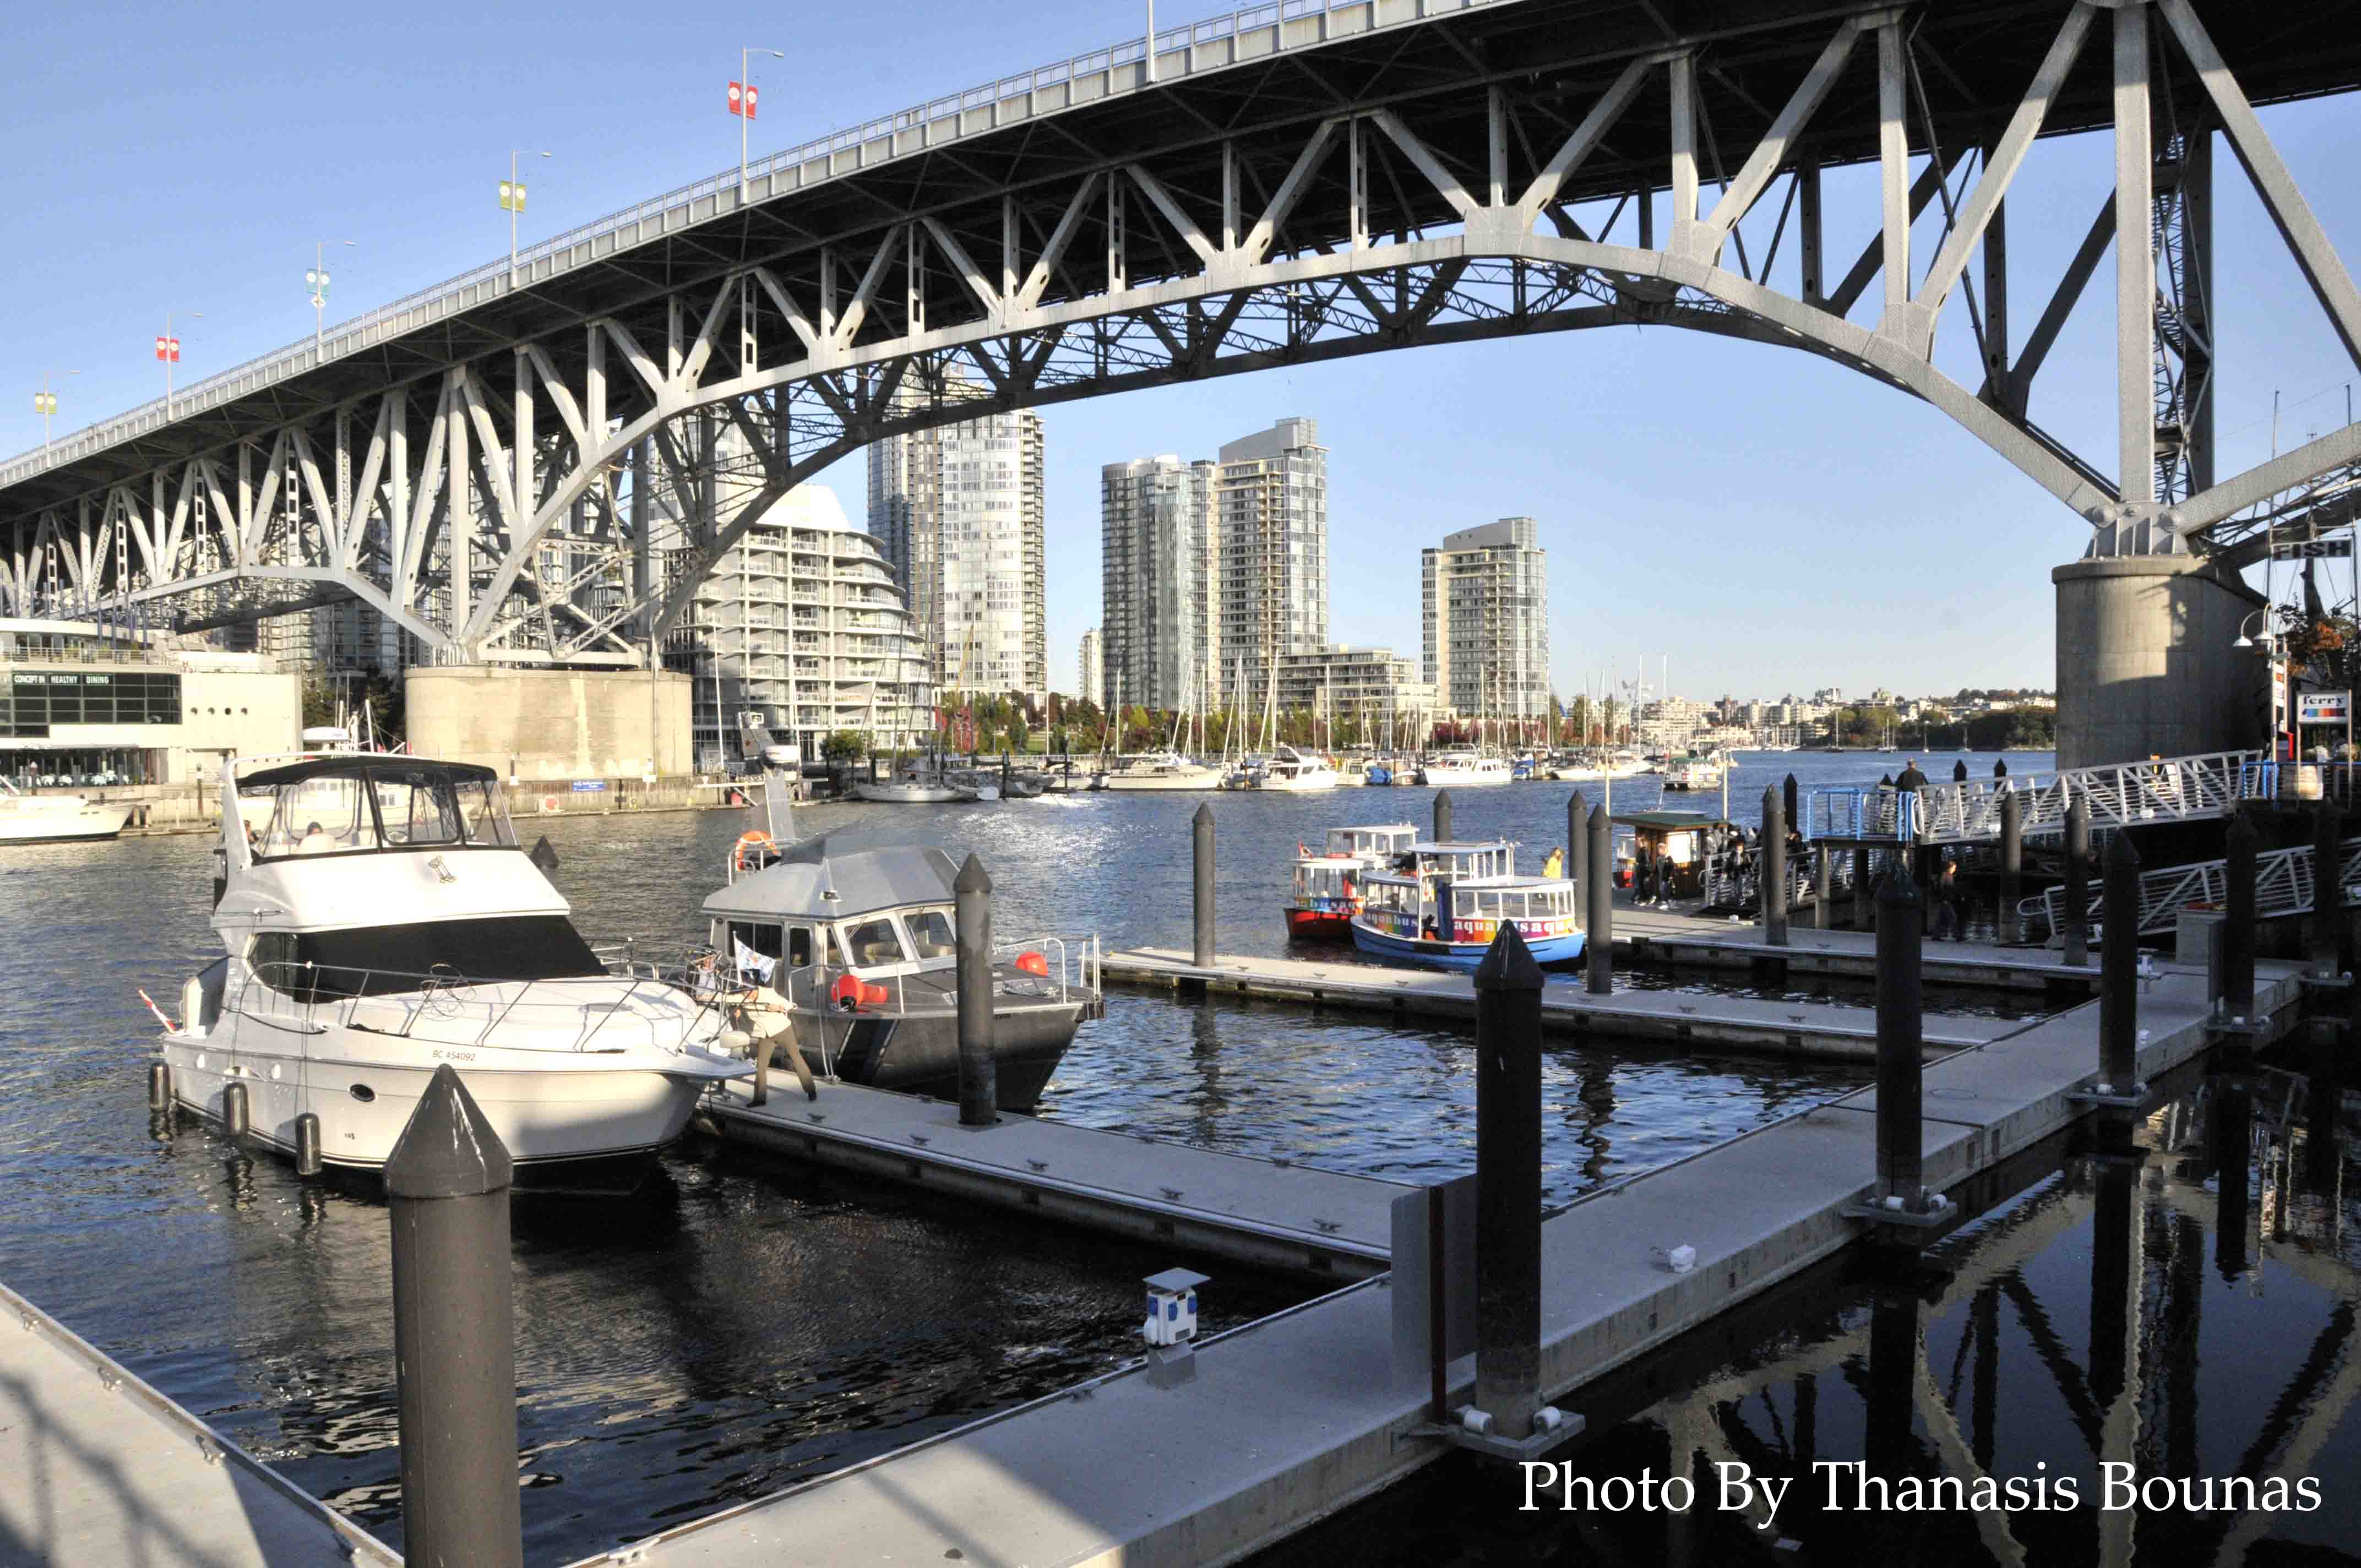 2 Granville Island Beautiful British Columbia Photo By Thanasis Bounas